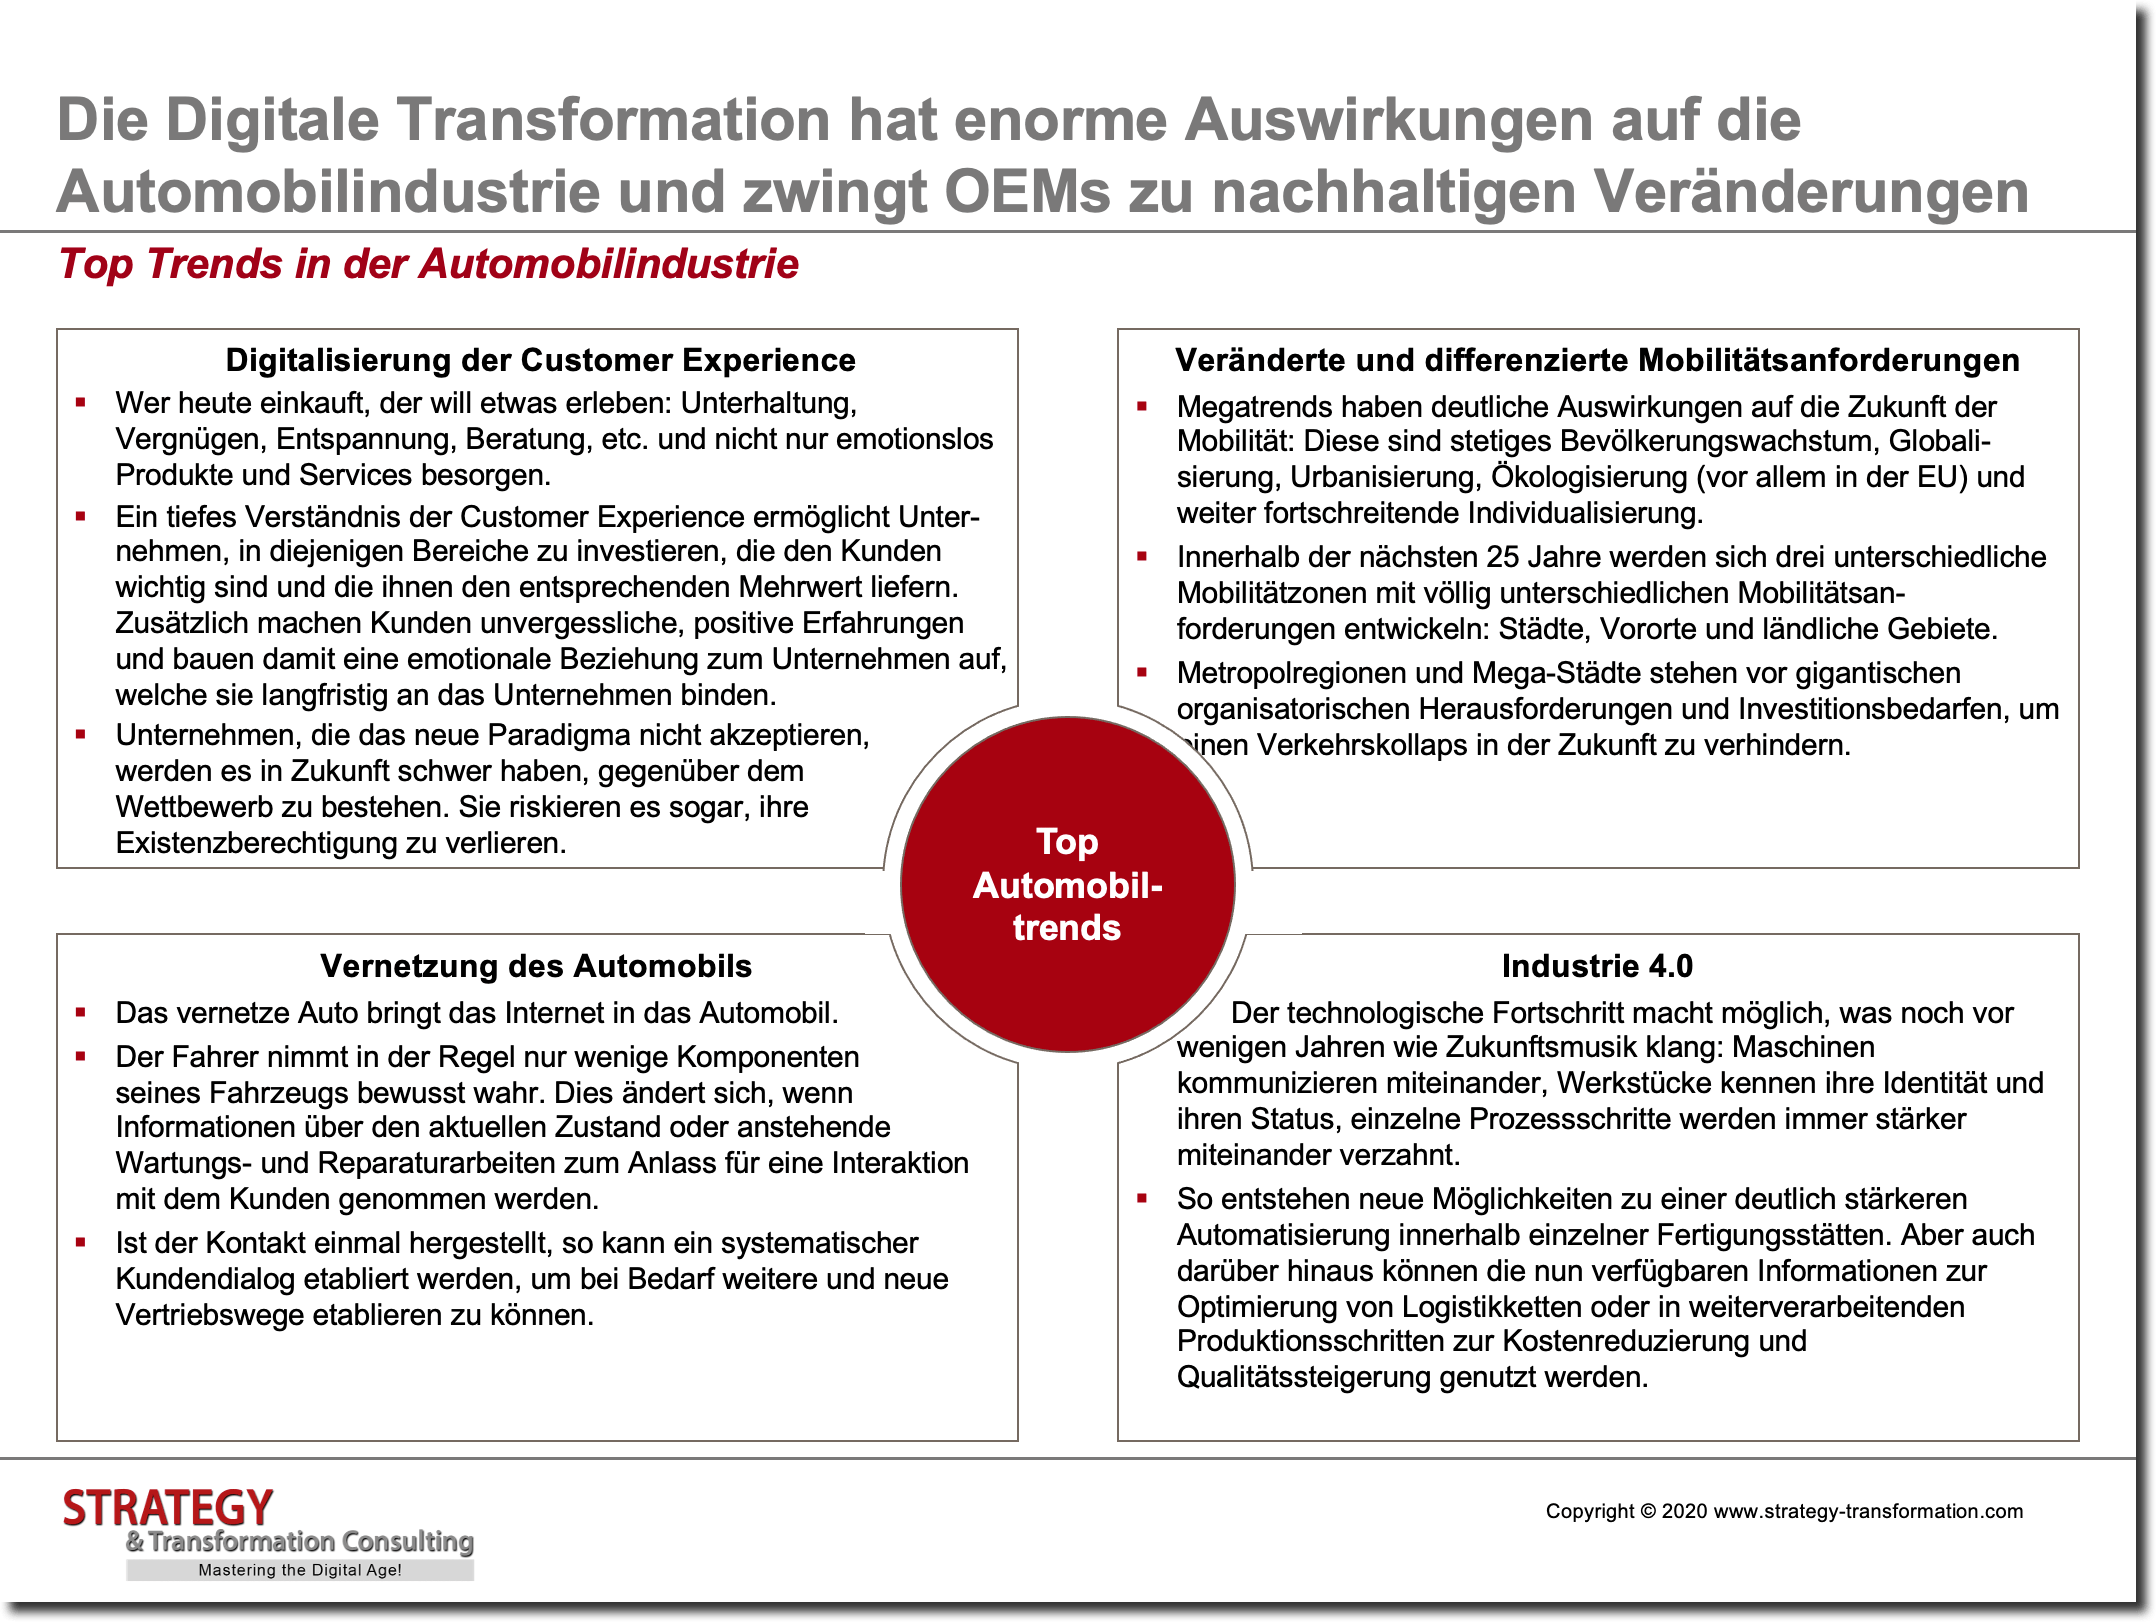 Top Trends in der Automobilindustrie